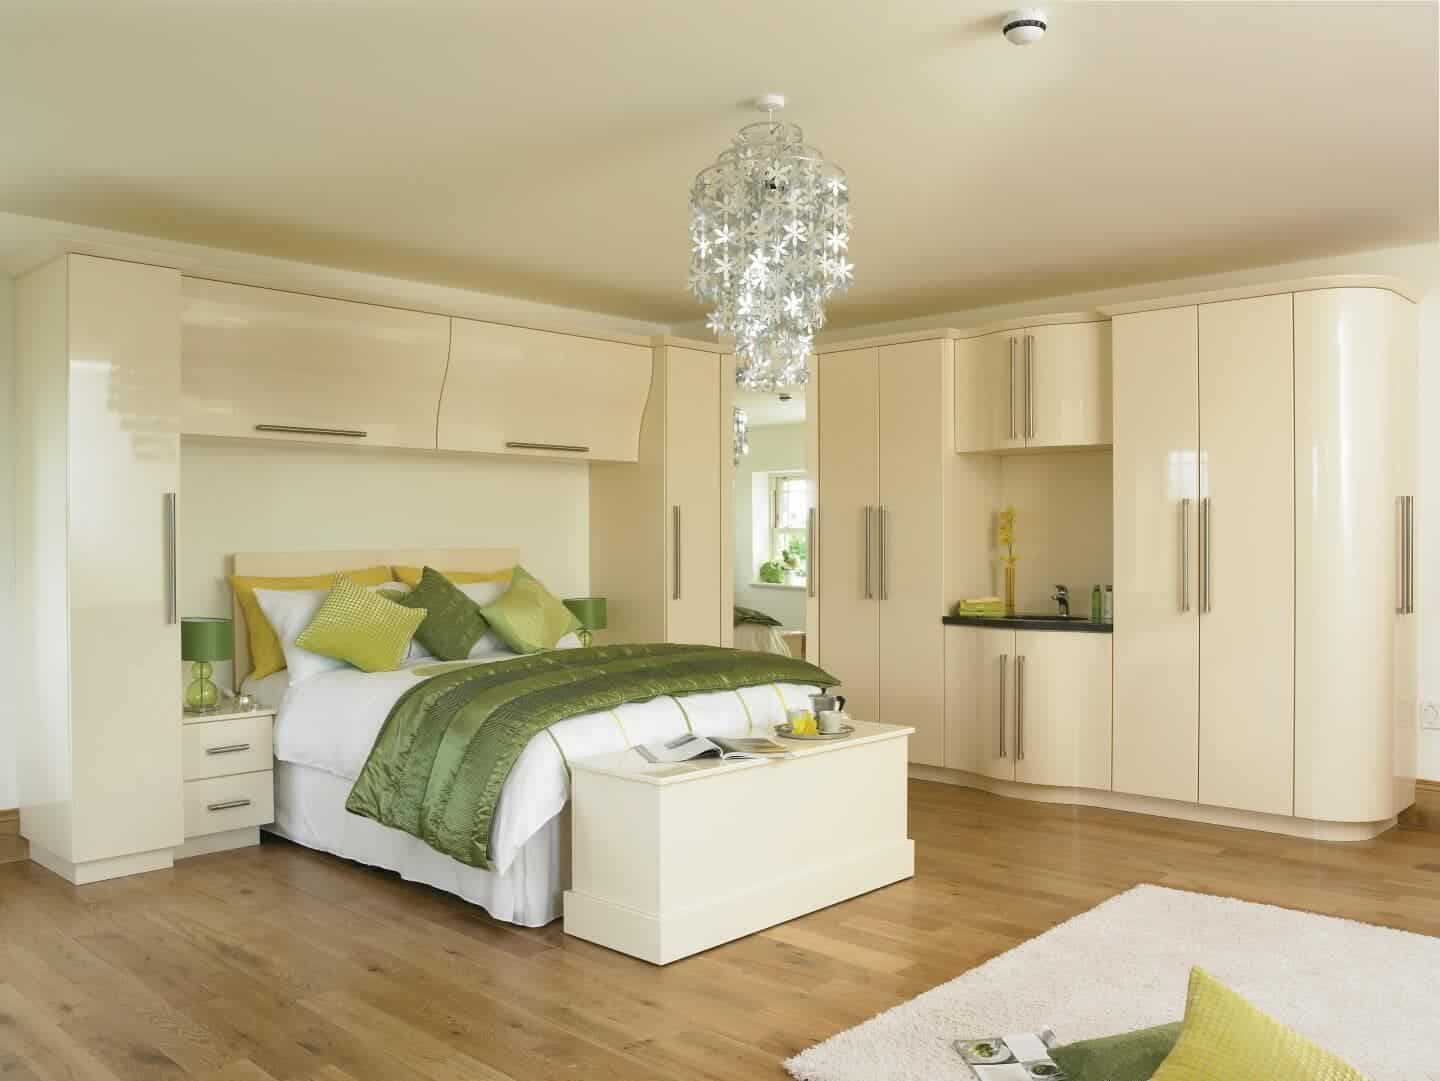 Goscote bedroom high gloss cream